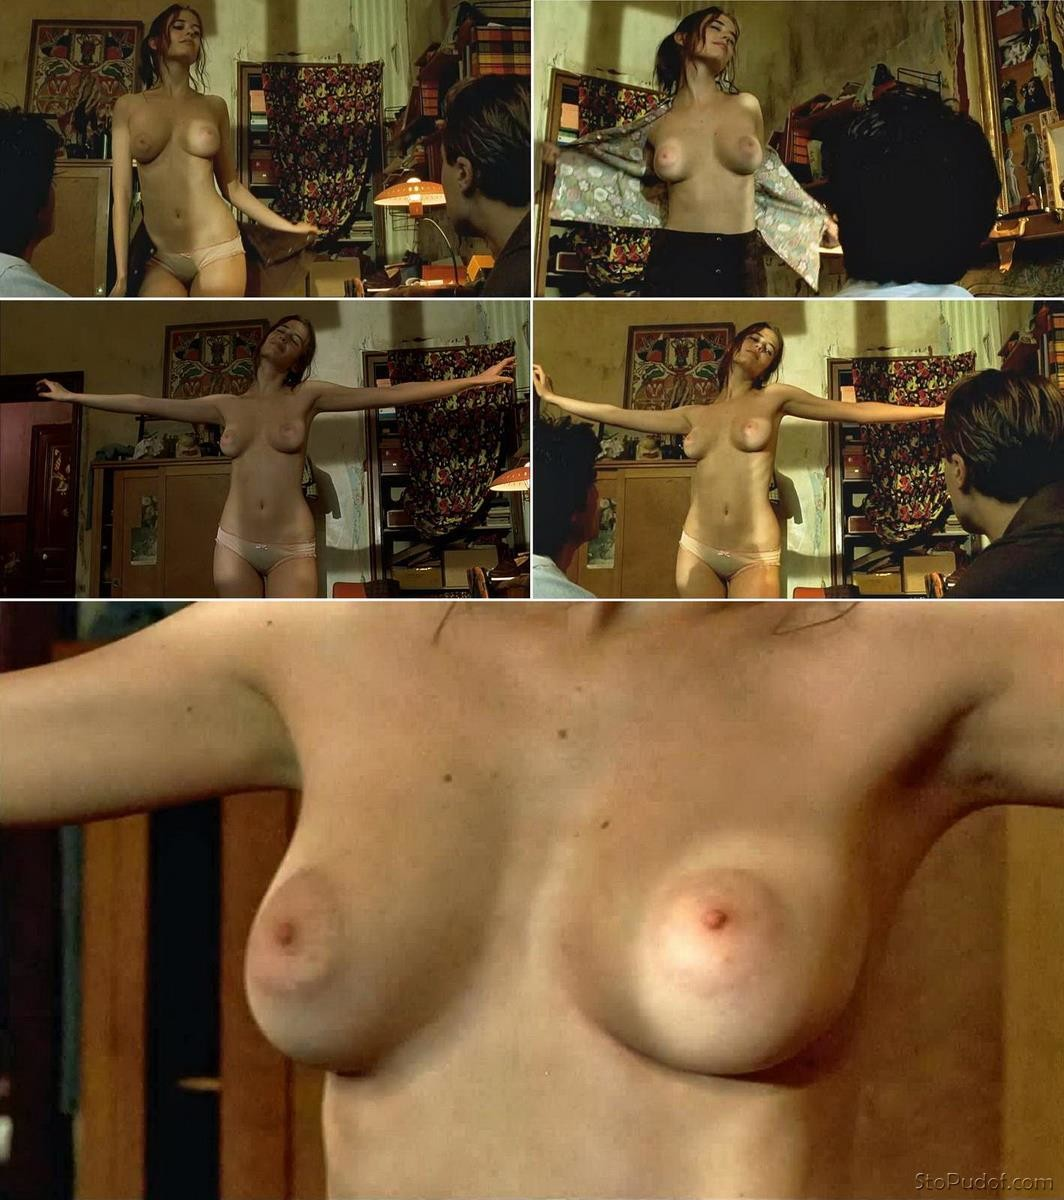 Eva Green nude photos image - UkPhotoSafari